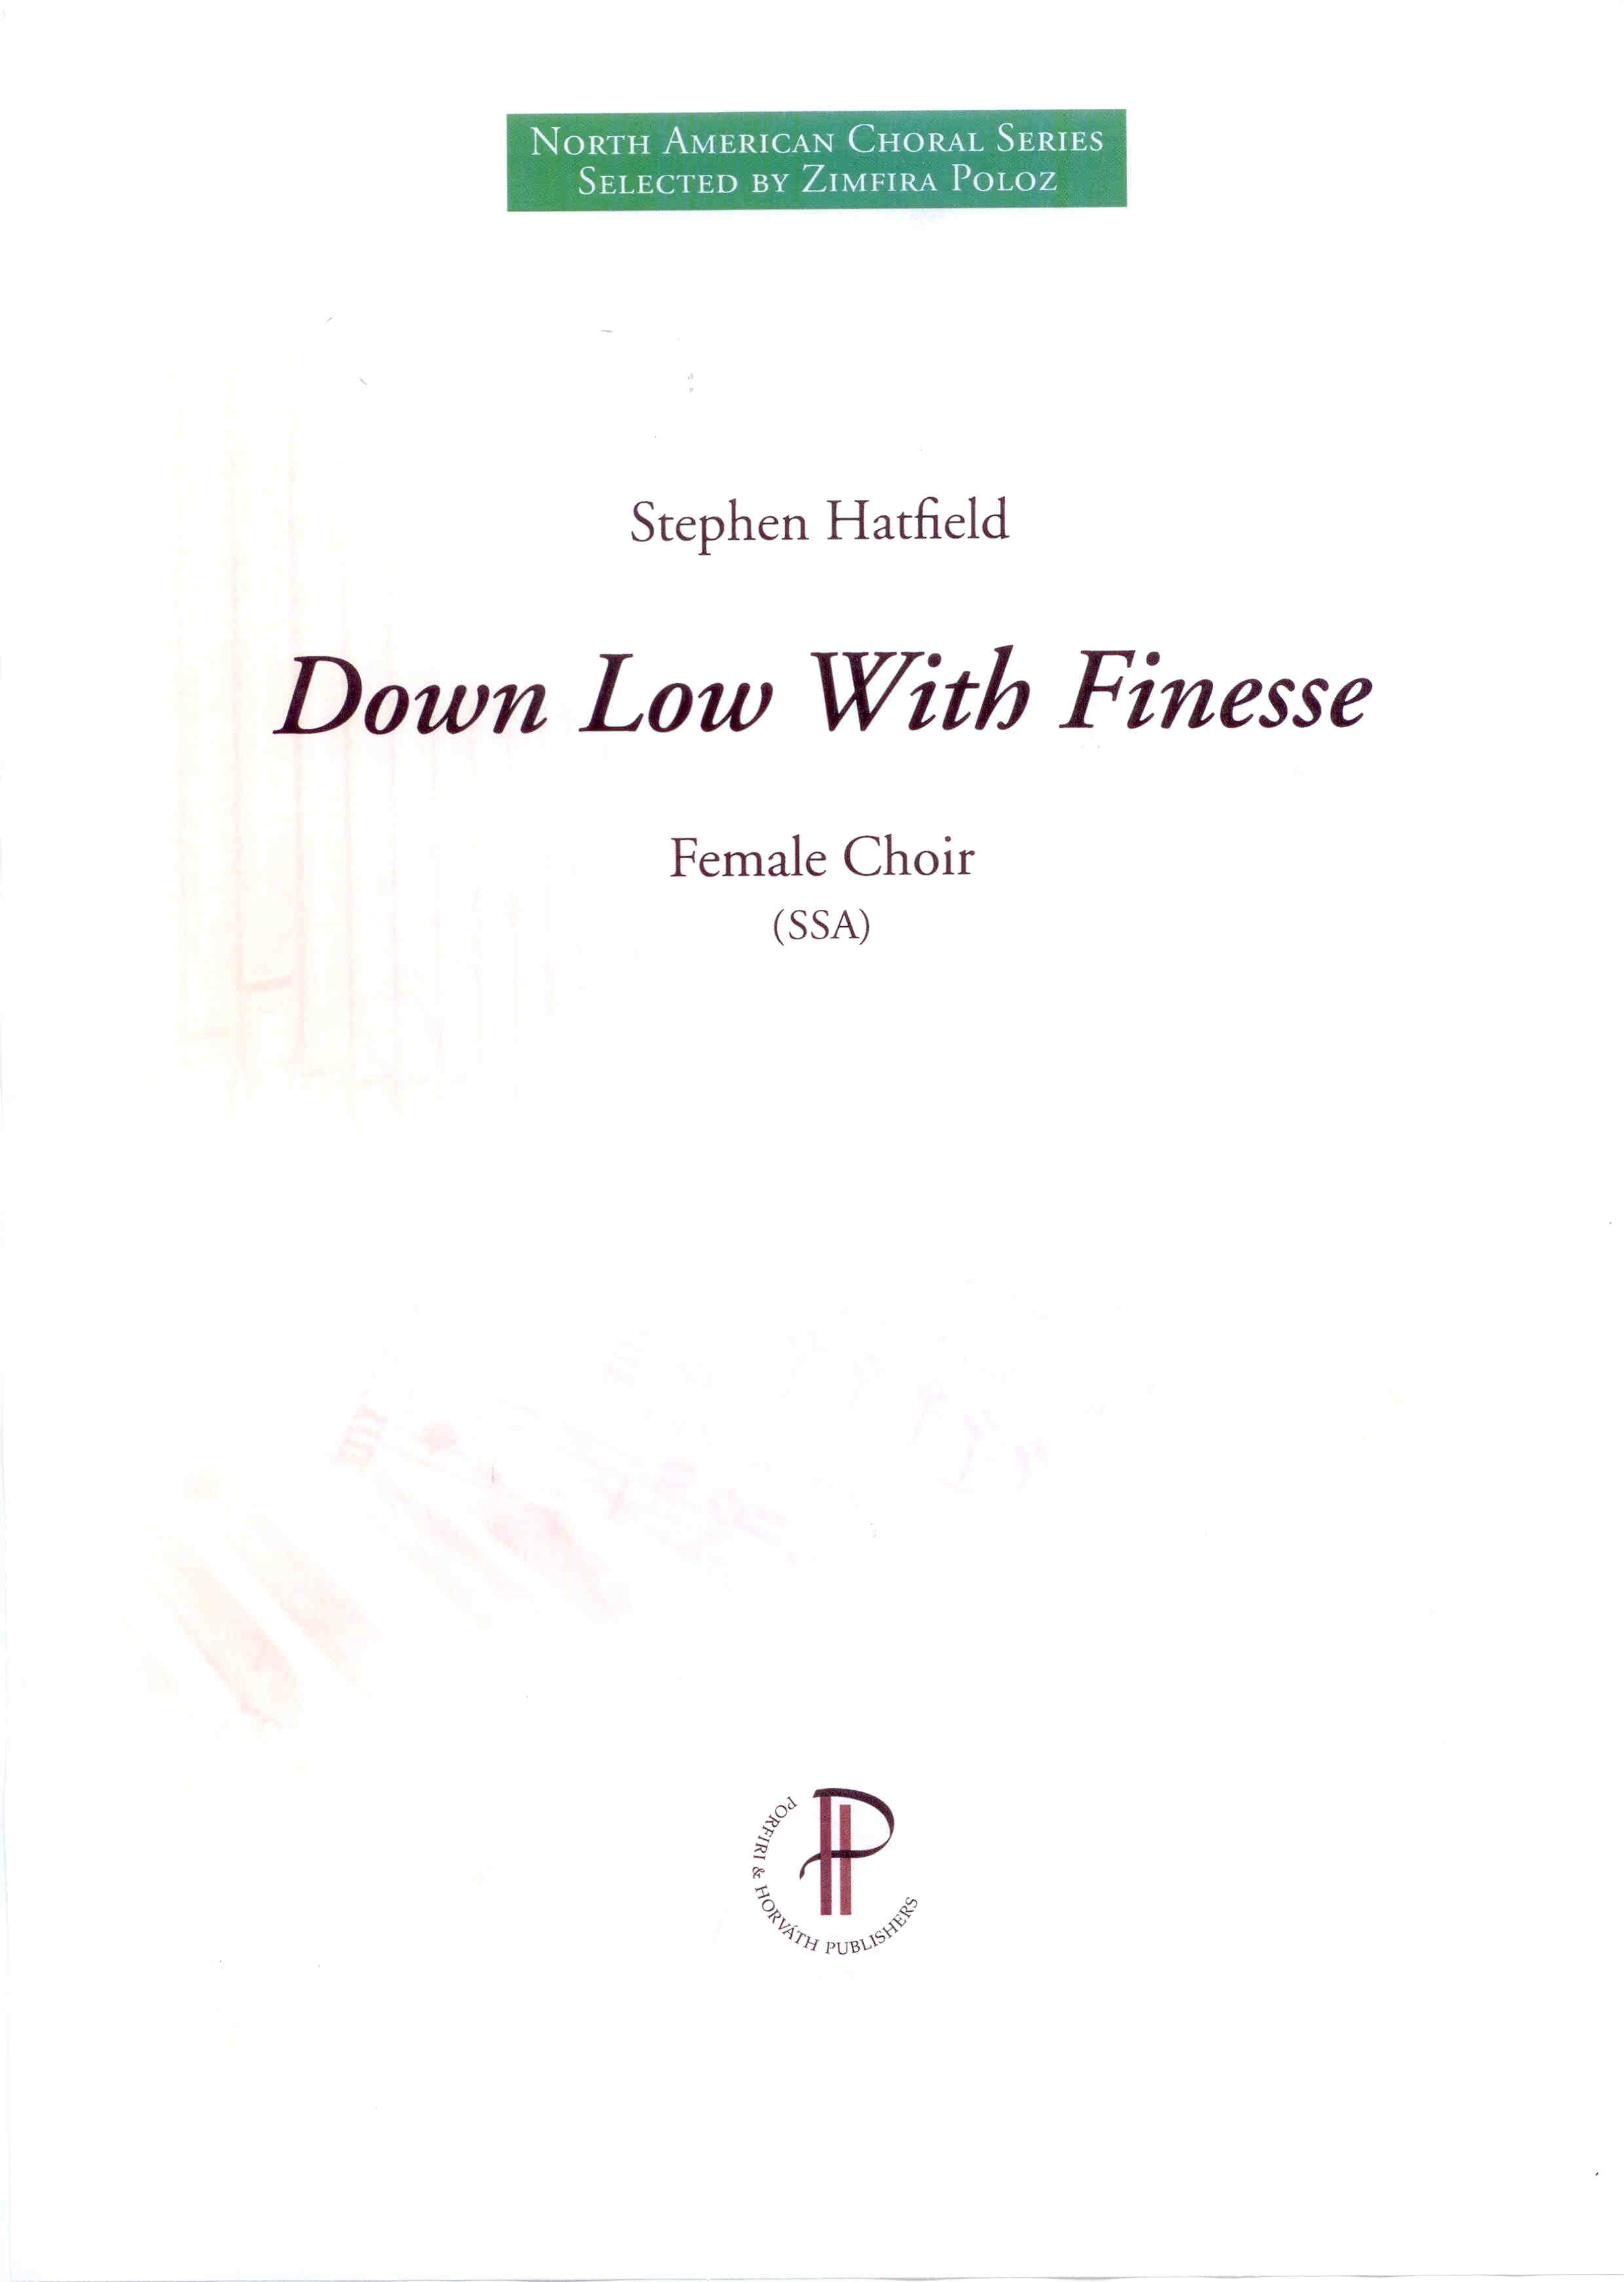 Down Low With Finesse - Show sample score